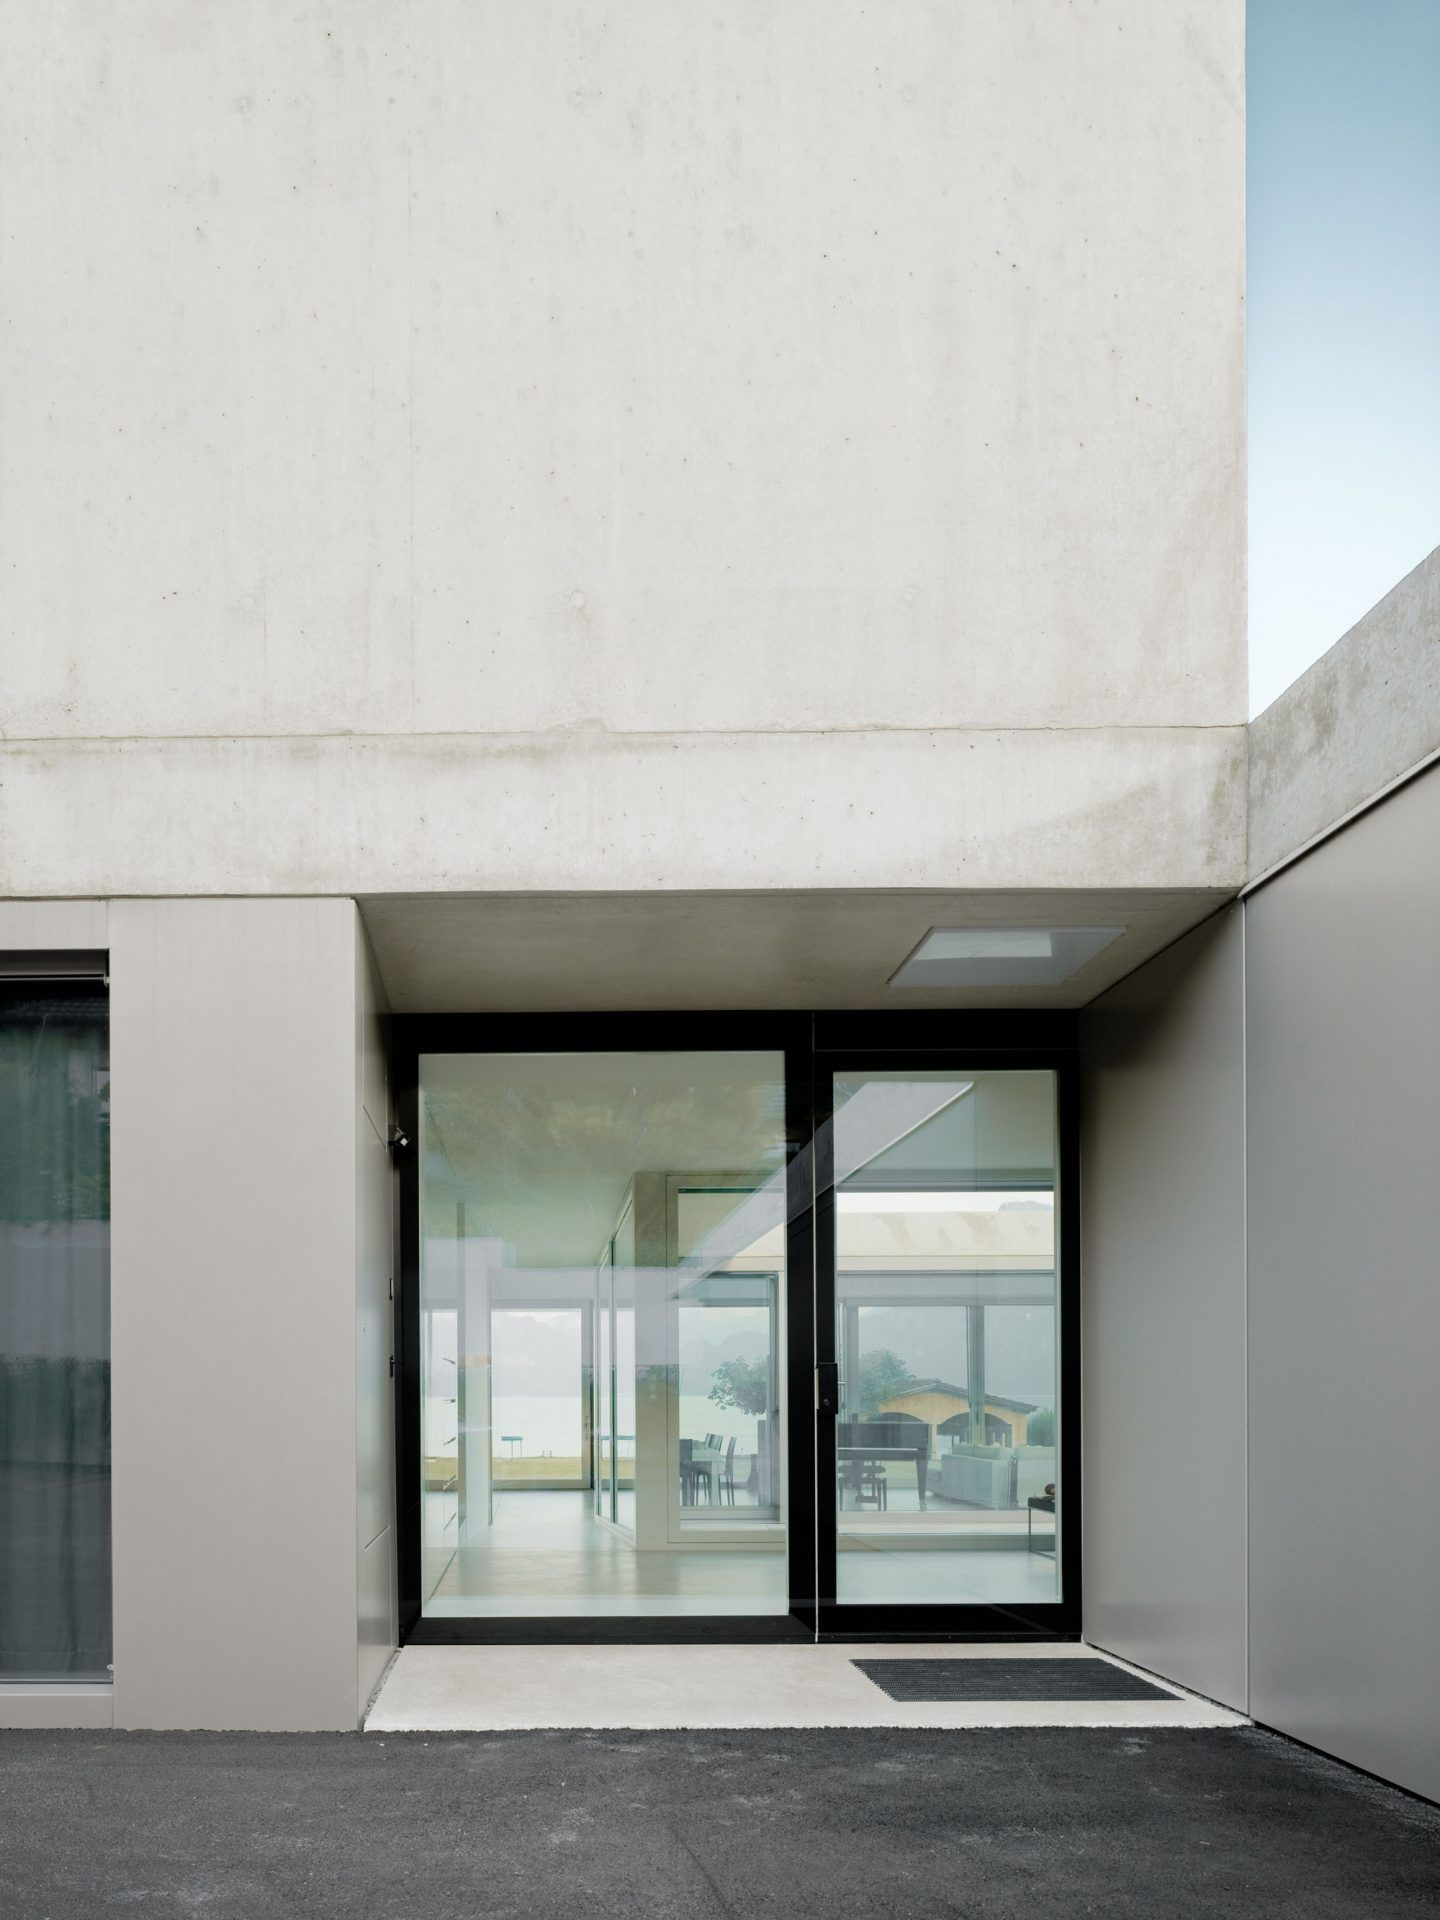 IGNANT-Architecture-Niklaus-Graber-Christoph-Steiger-Architects-Villa-M-006